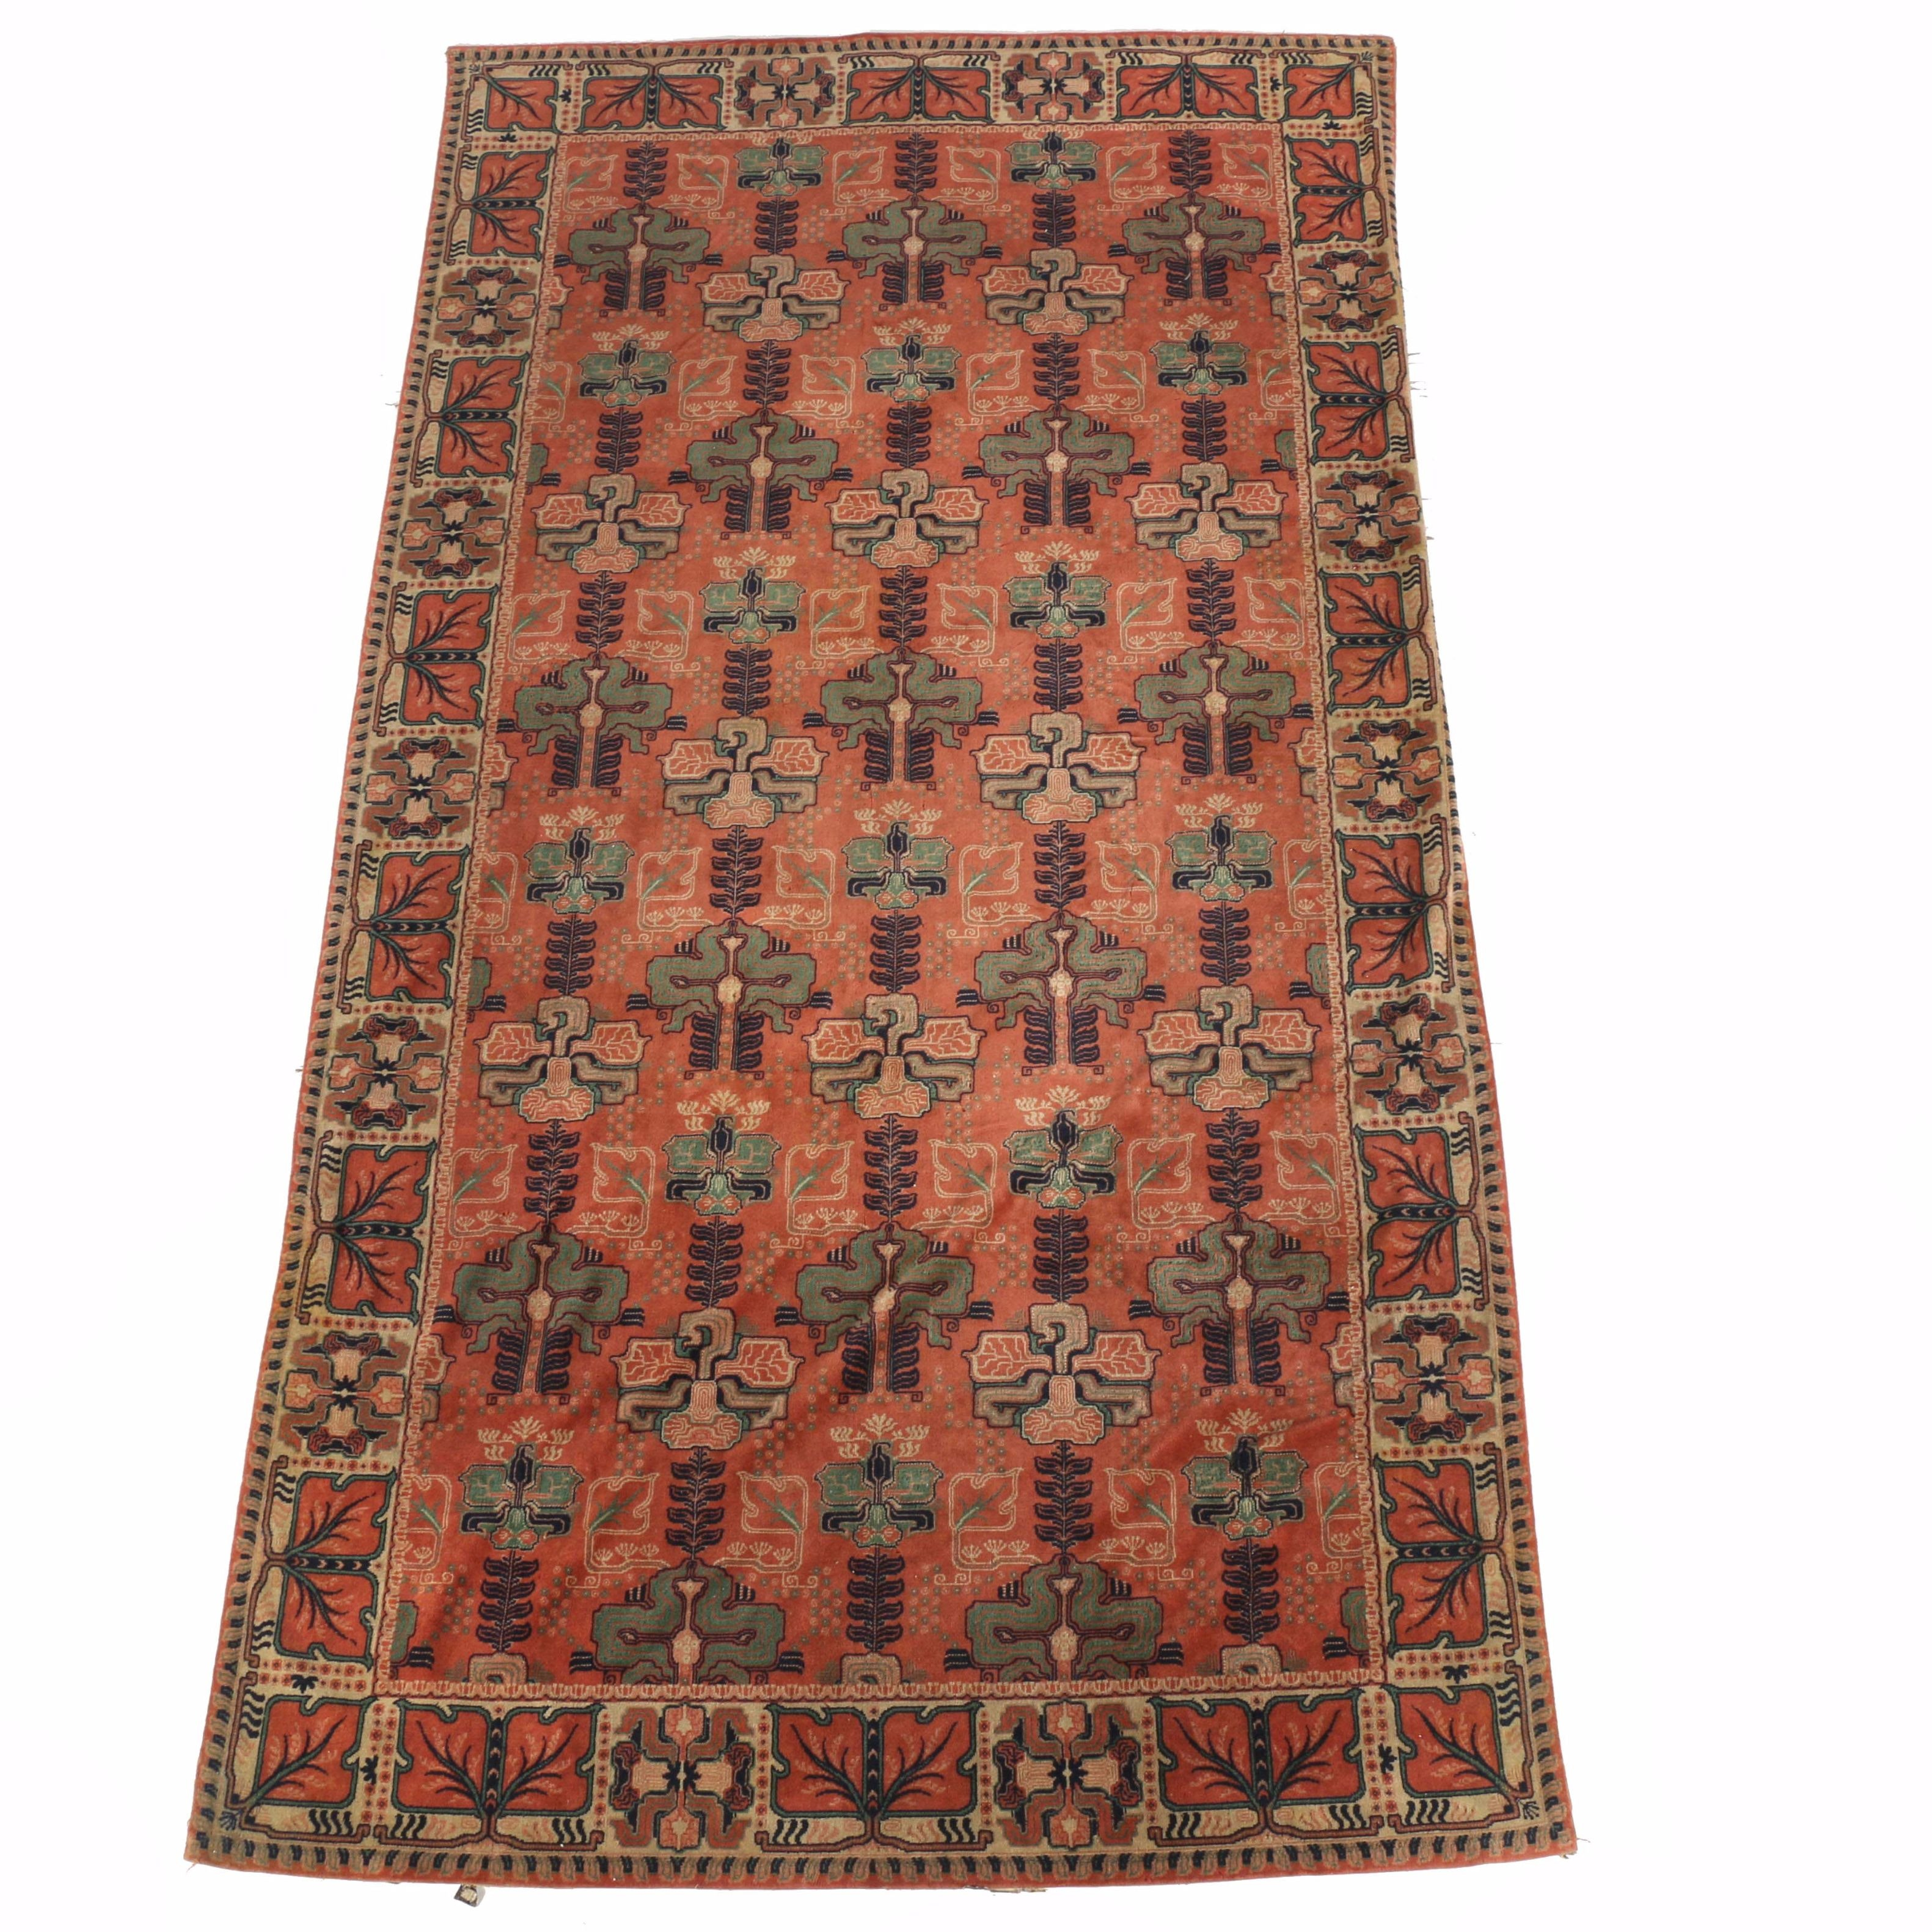 Semi-Antique Arts and Crafts-Style Persian Area Rug